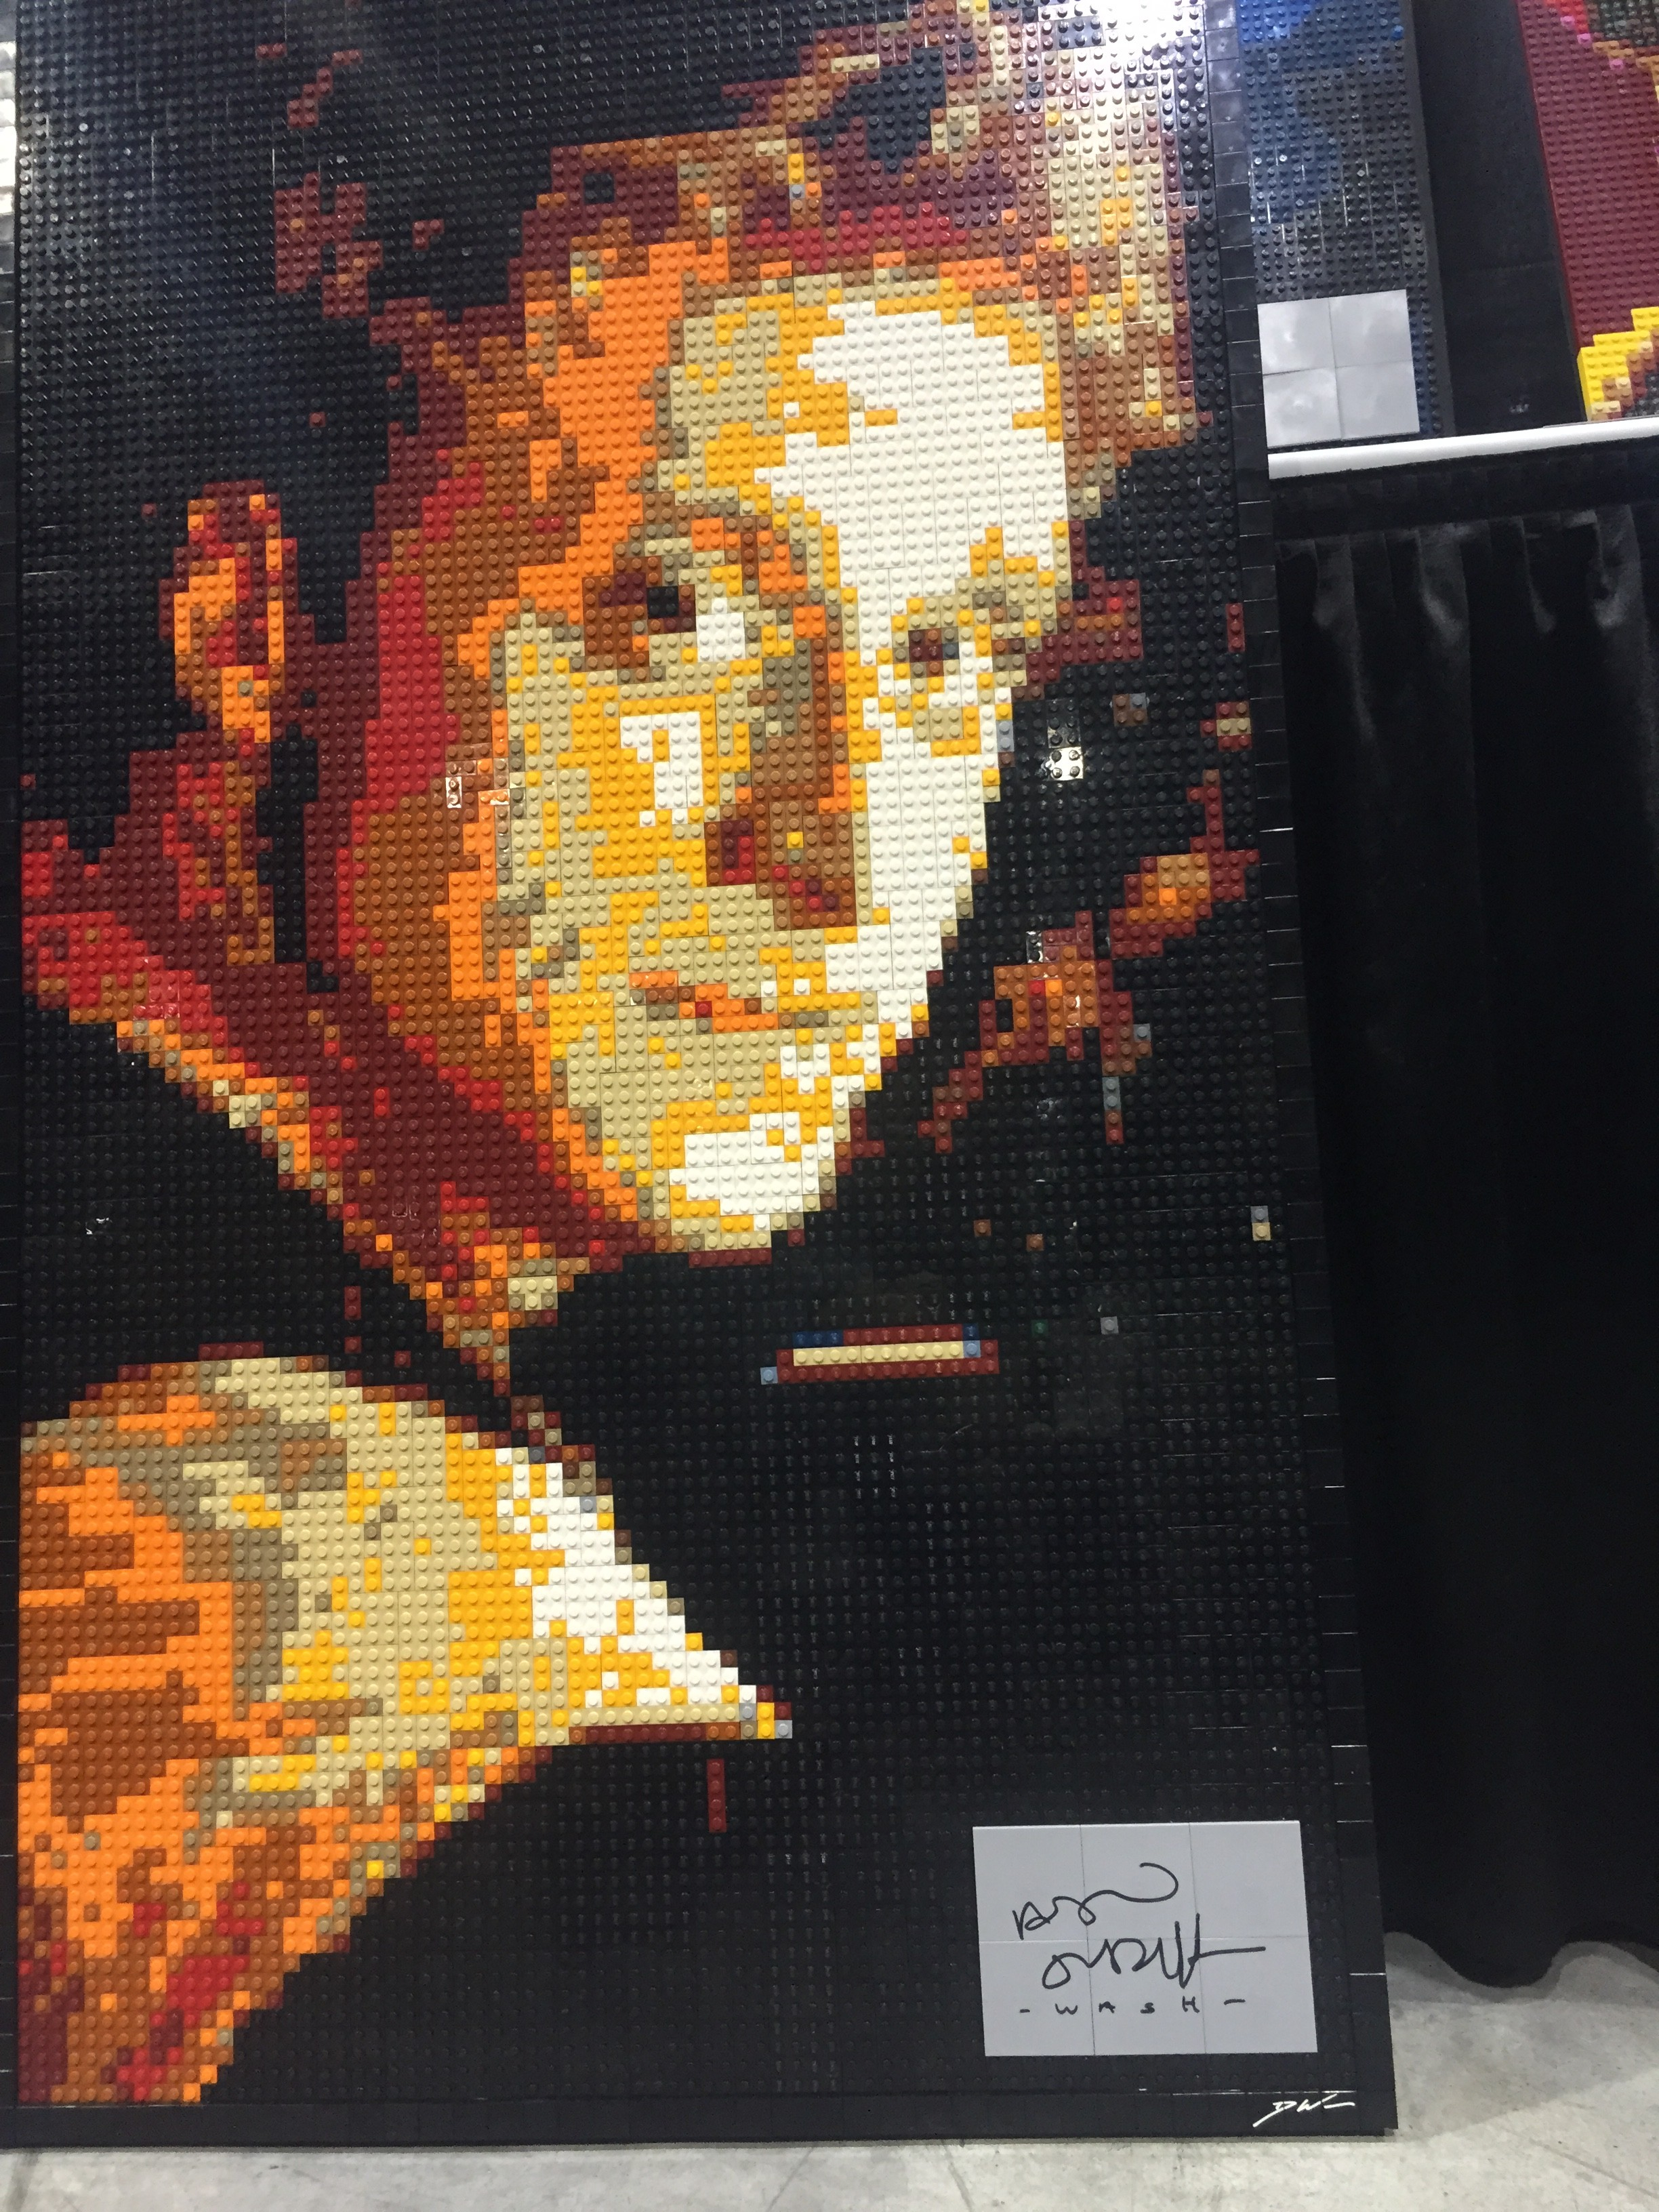 A Lego Mosaic of Wash from Firefly by Dave Ware (Brickwares)